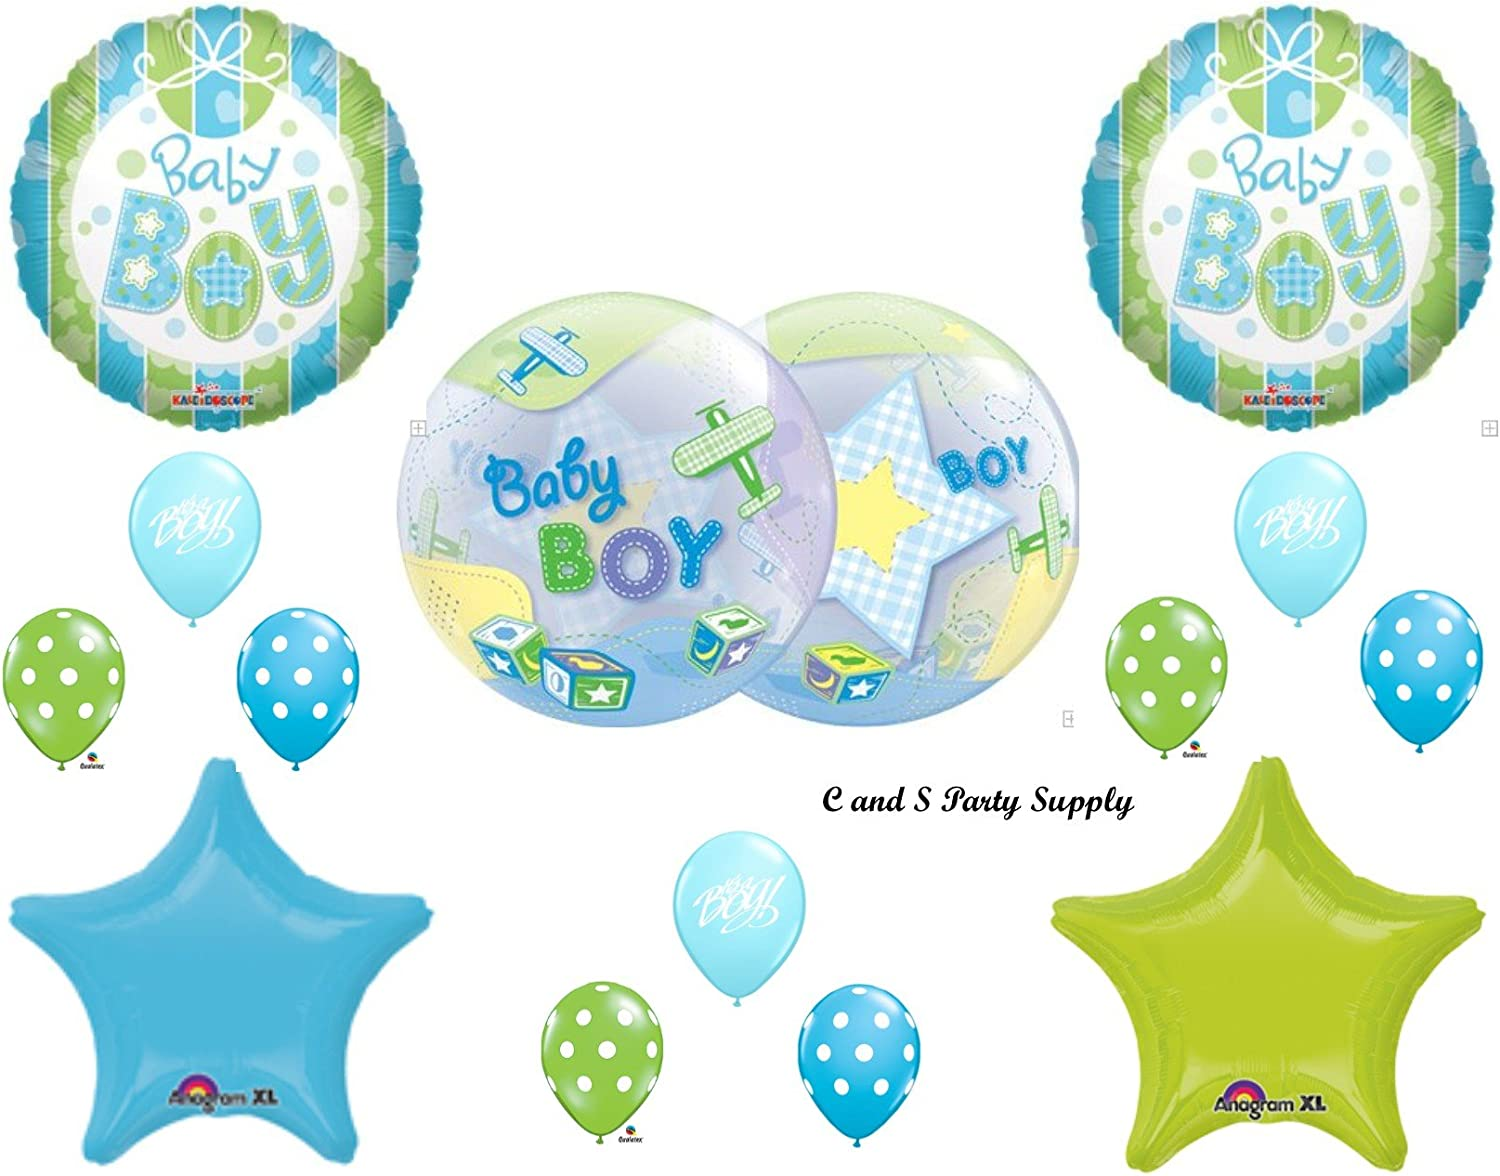 IT/'S A BOY AIRPLANE /& BLOCKS BABY SHOWER Balloons Decorations Supplies Planes